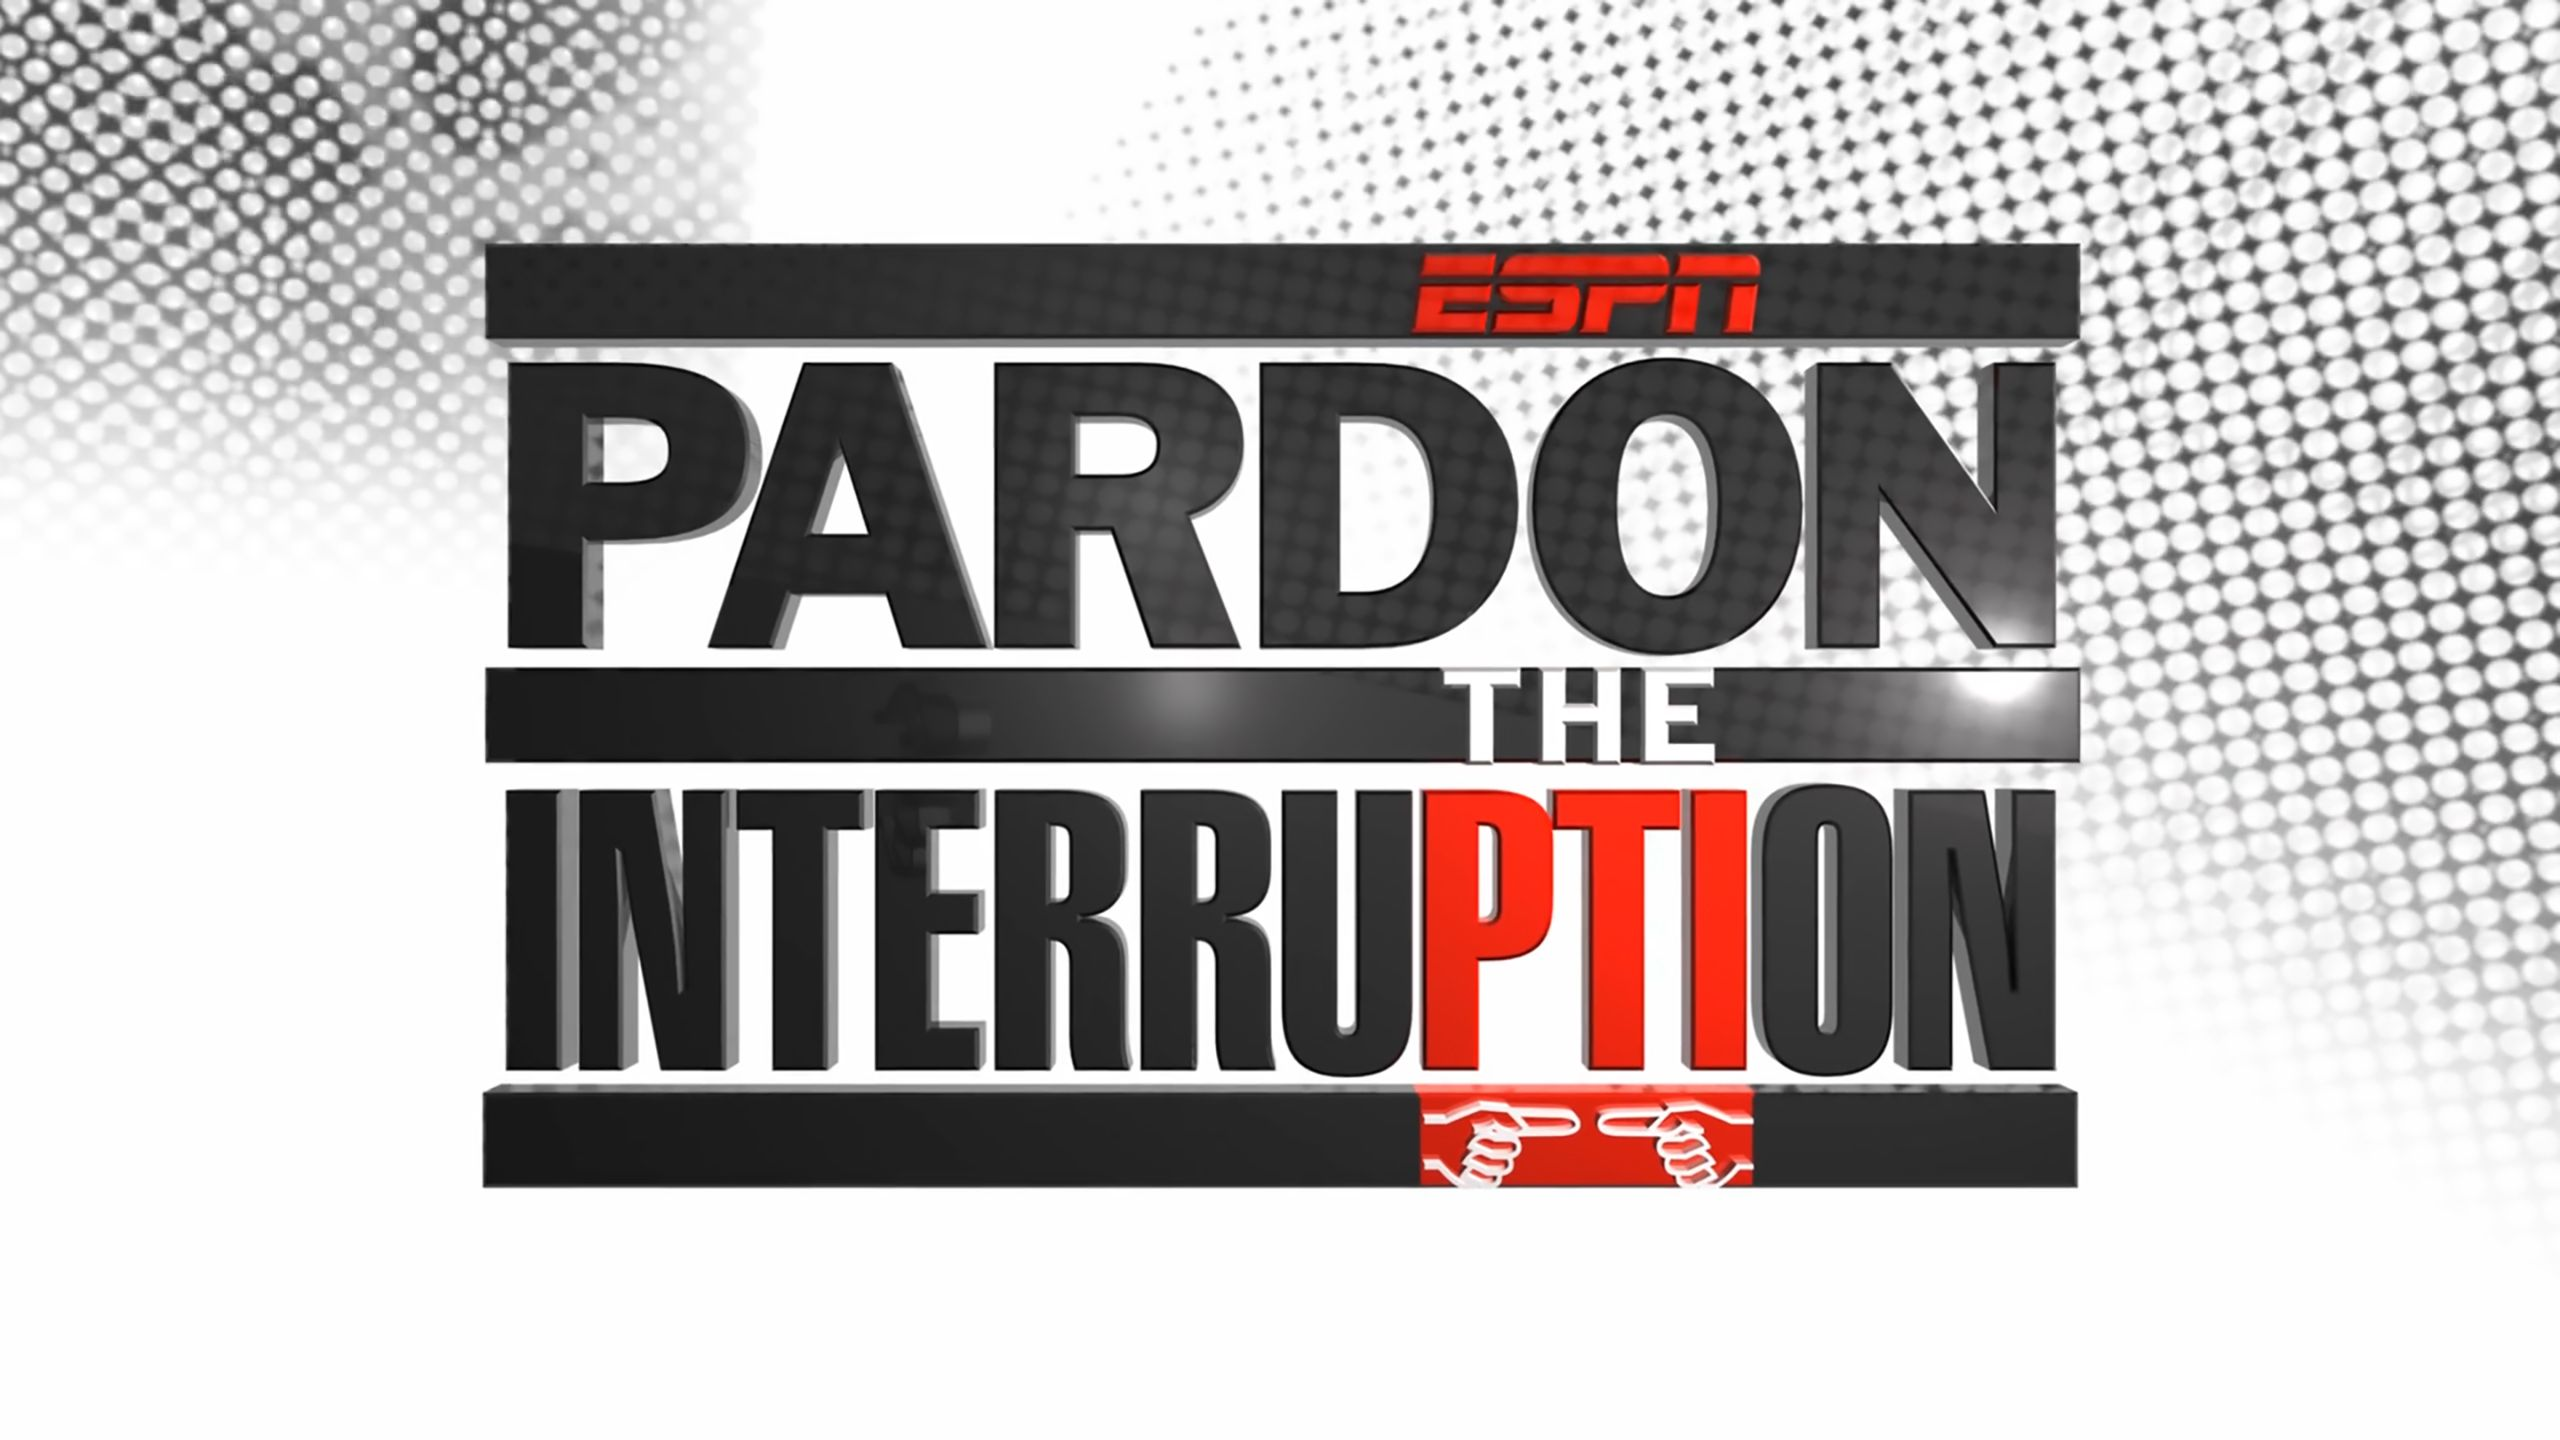 Fri, 1/19 - Pardon The Interruption